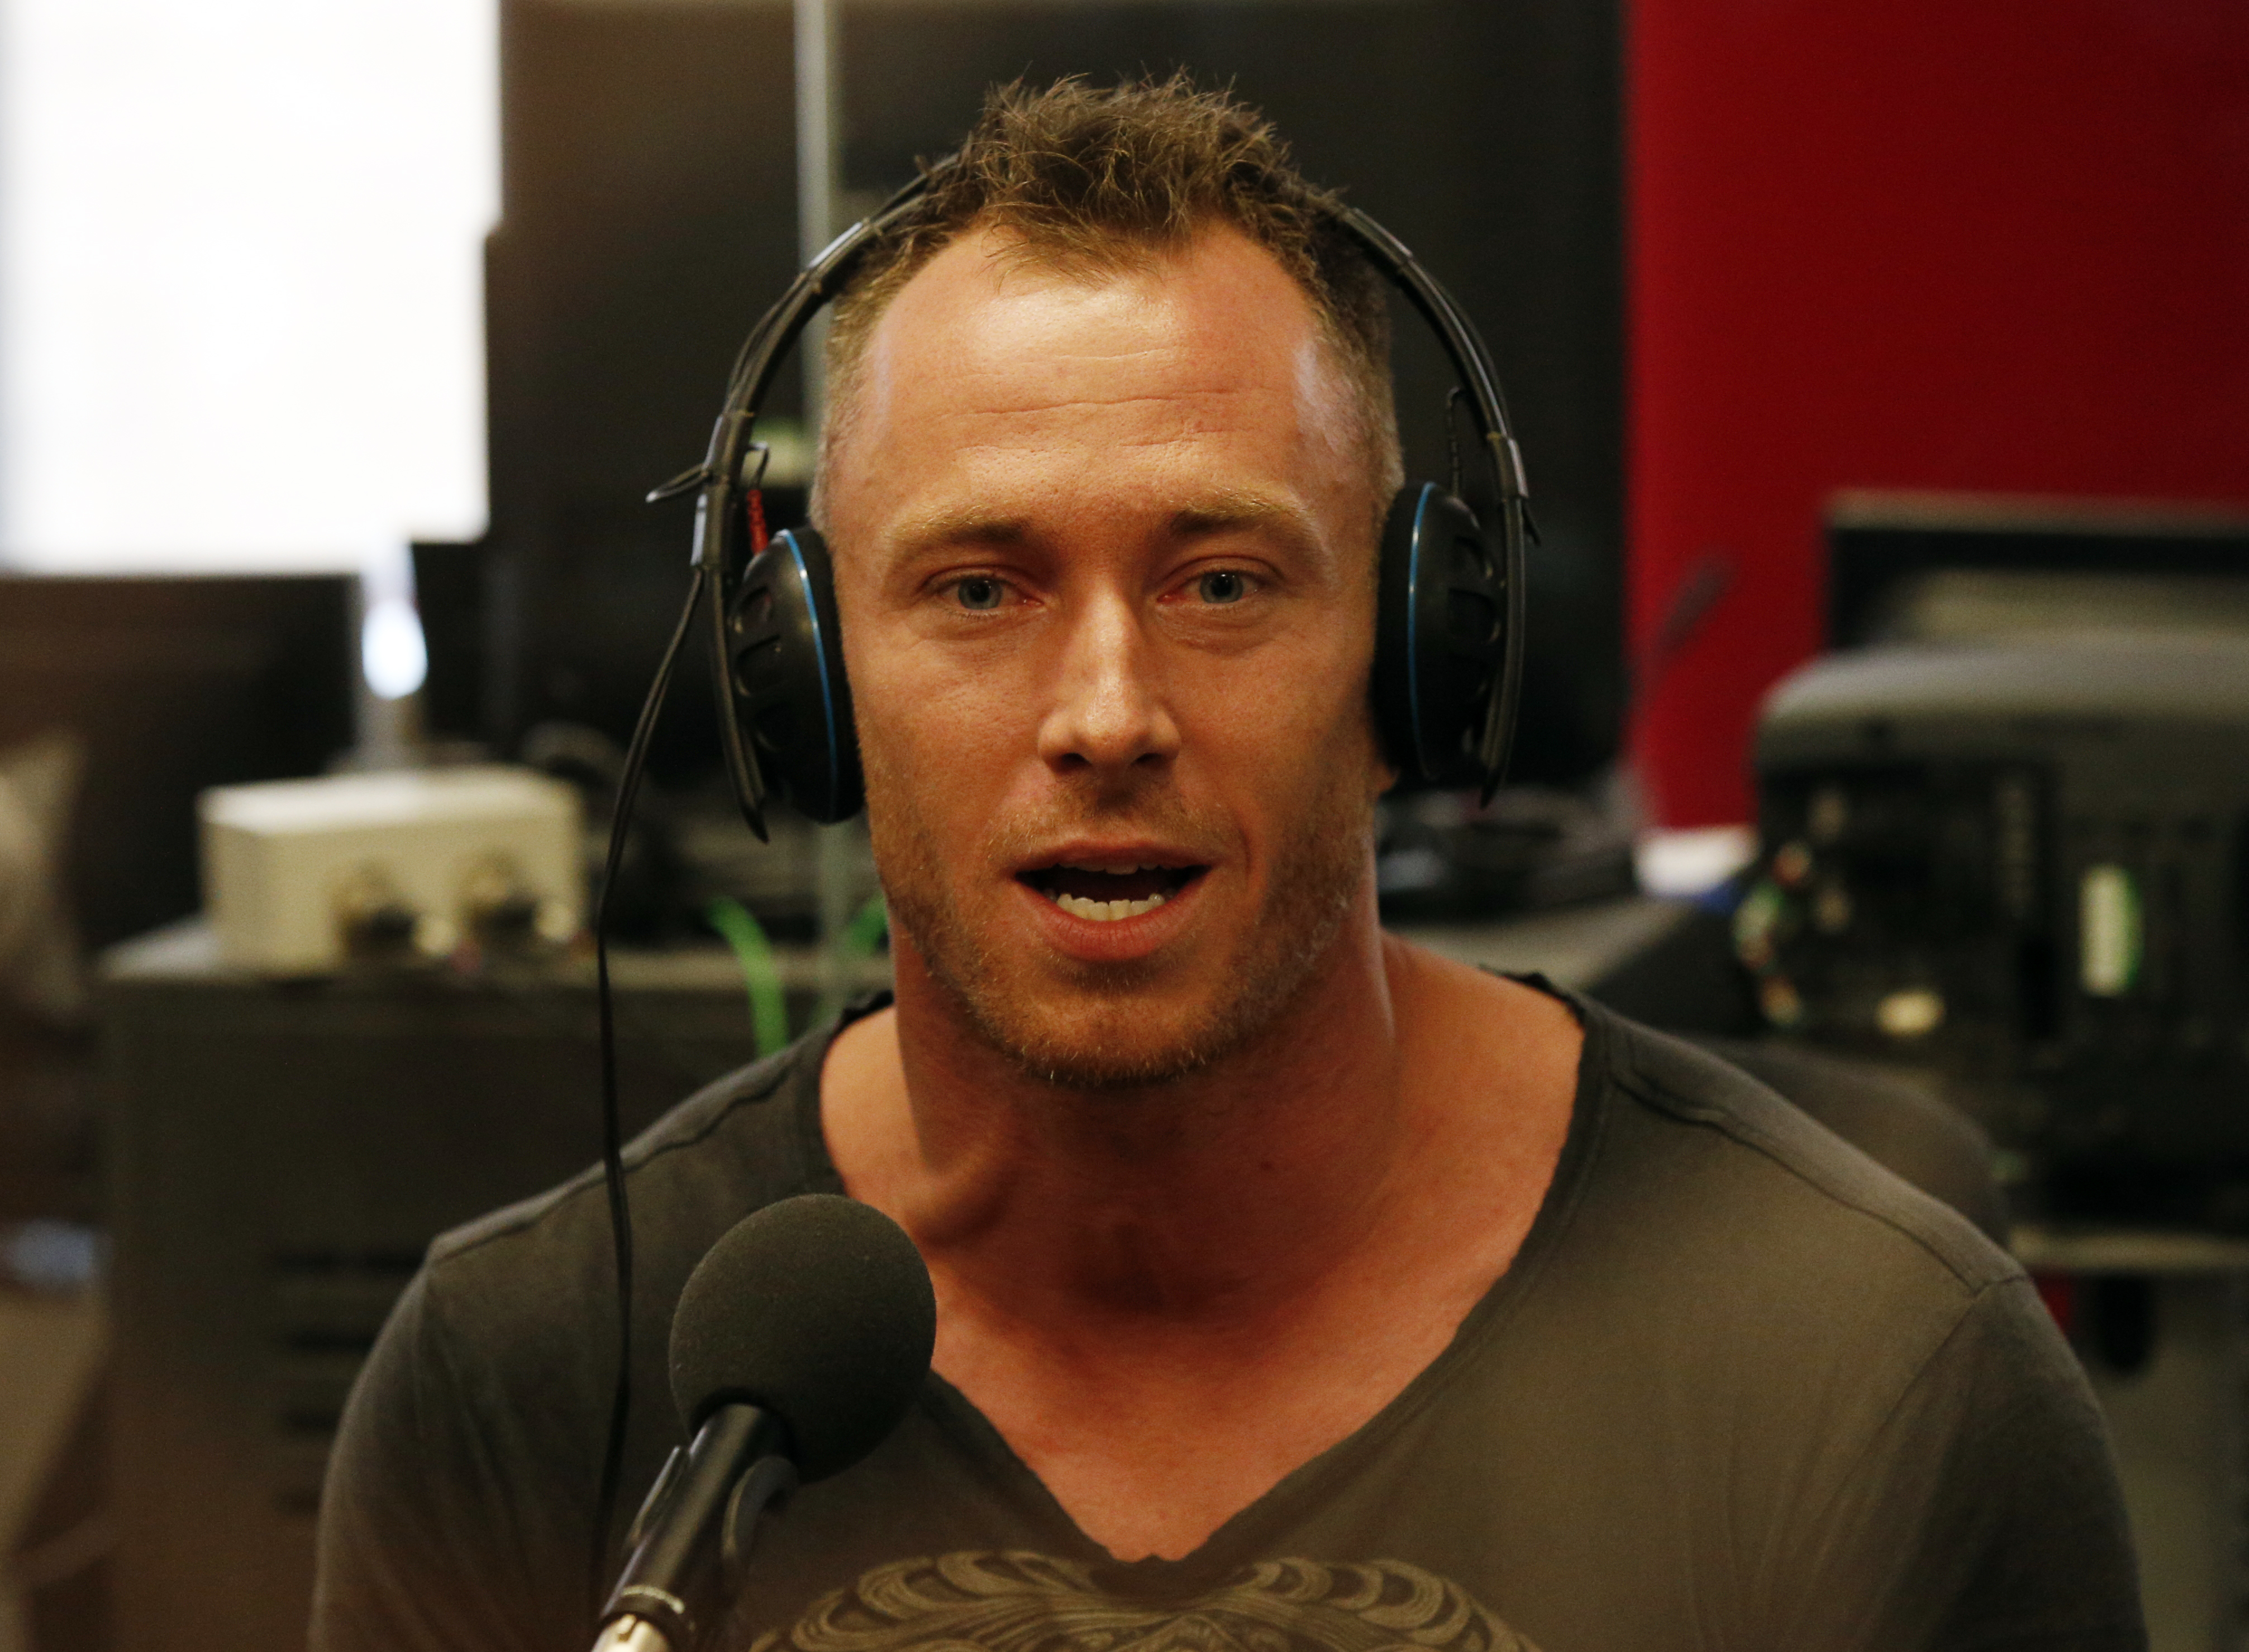 Strictly Come Dancing dancer James Jordan on the Vanessa Feltz show on BBC London 94.9 FM, ahead of the first live Strictly Come Dancing show on Friday on BBC1.   (Photo by Jonathan Brady/PA Images via Getty Images)